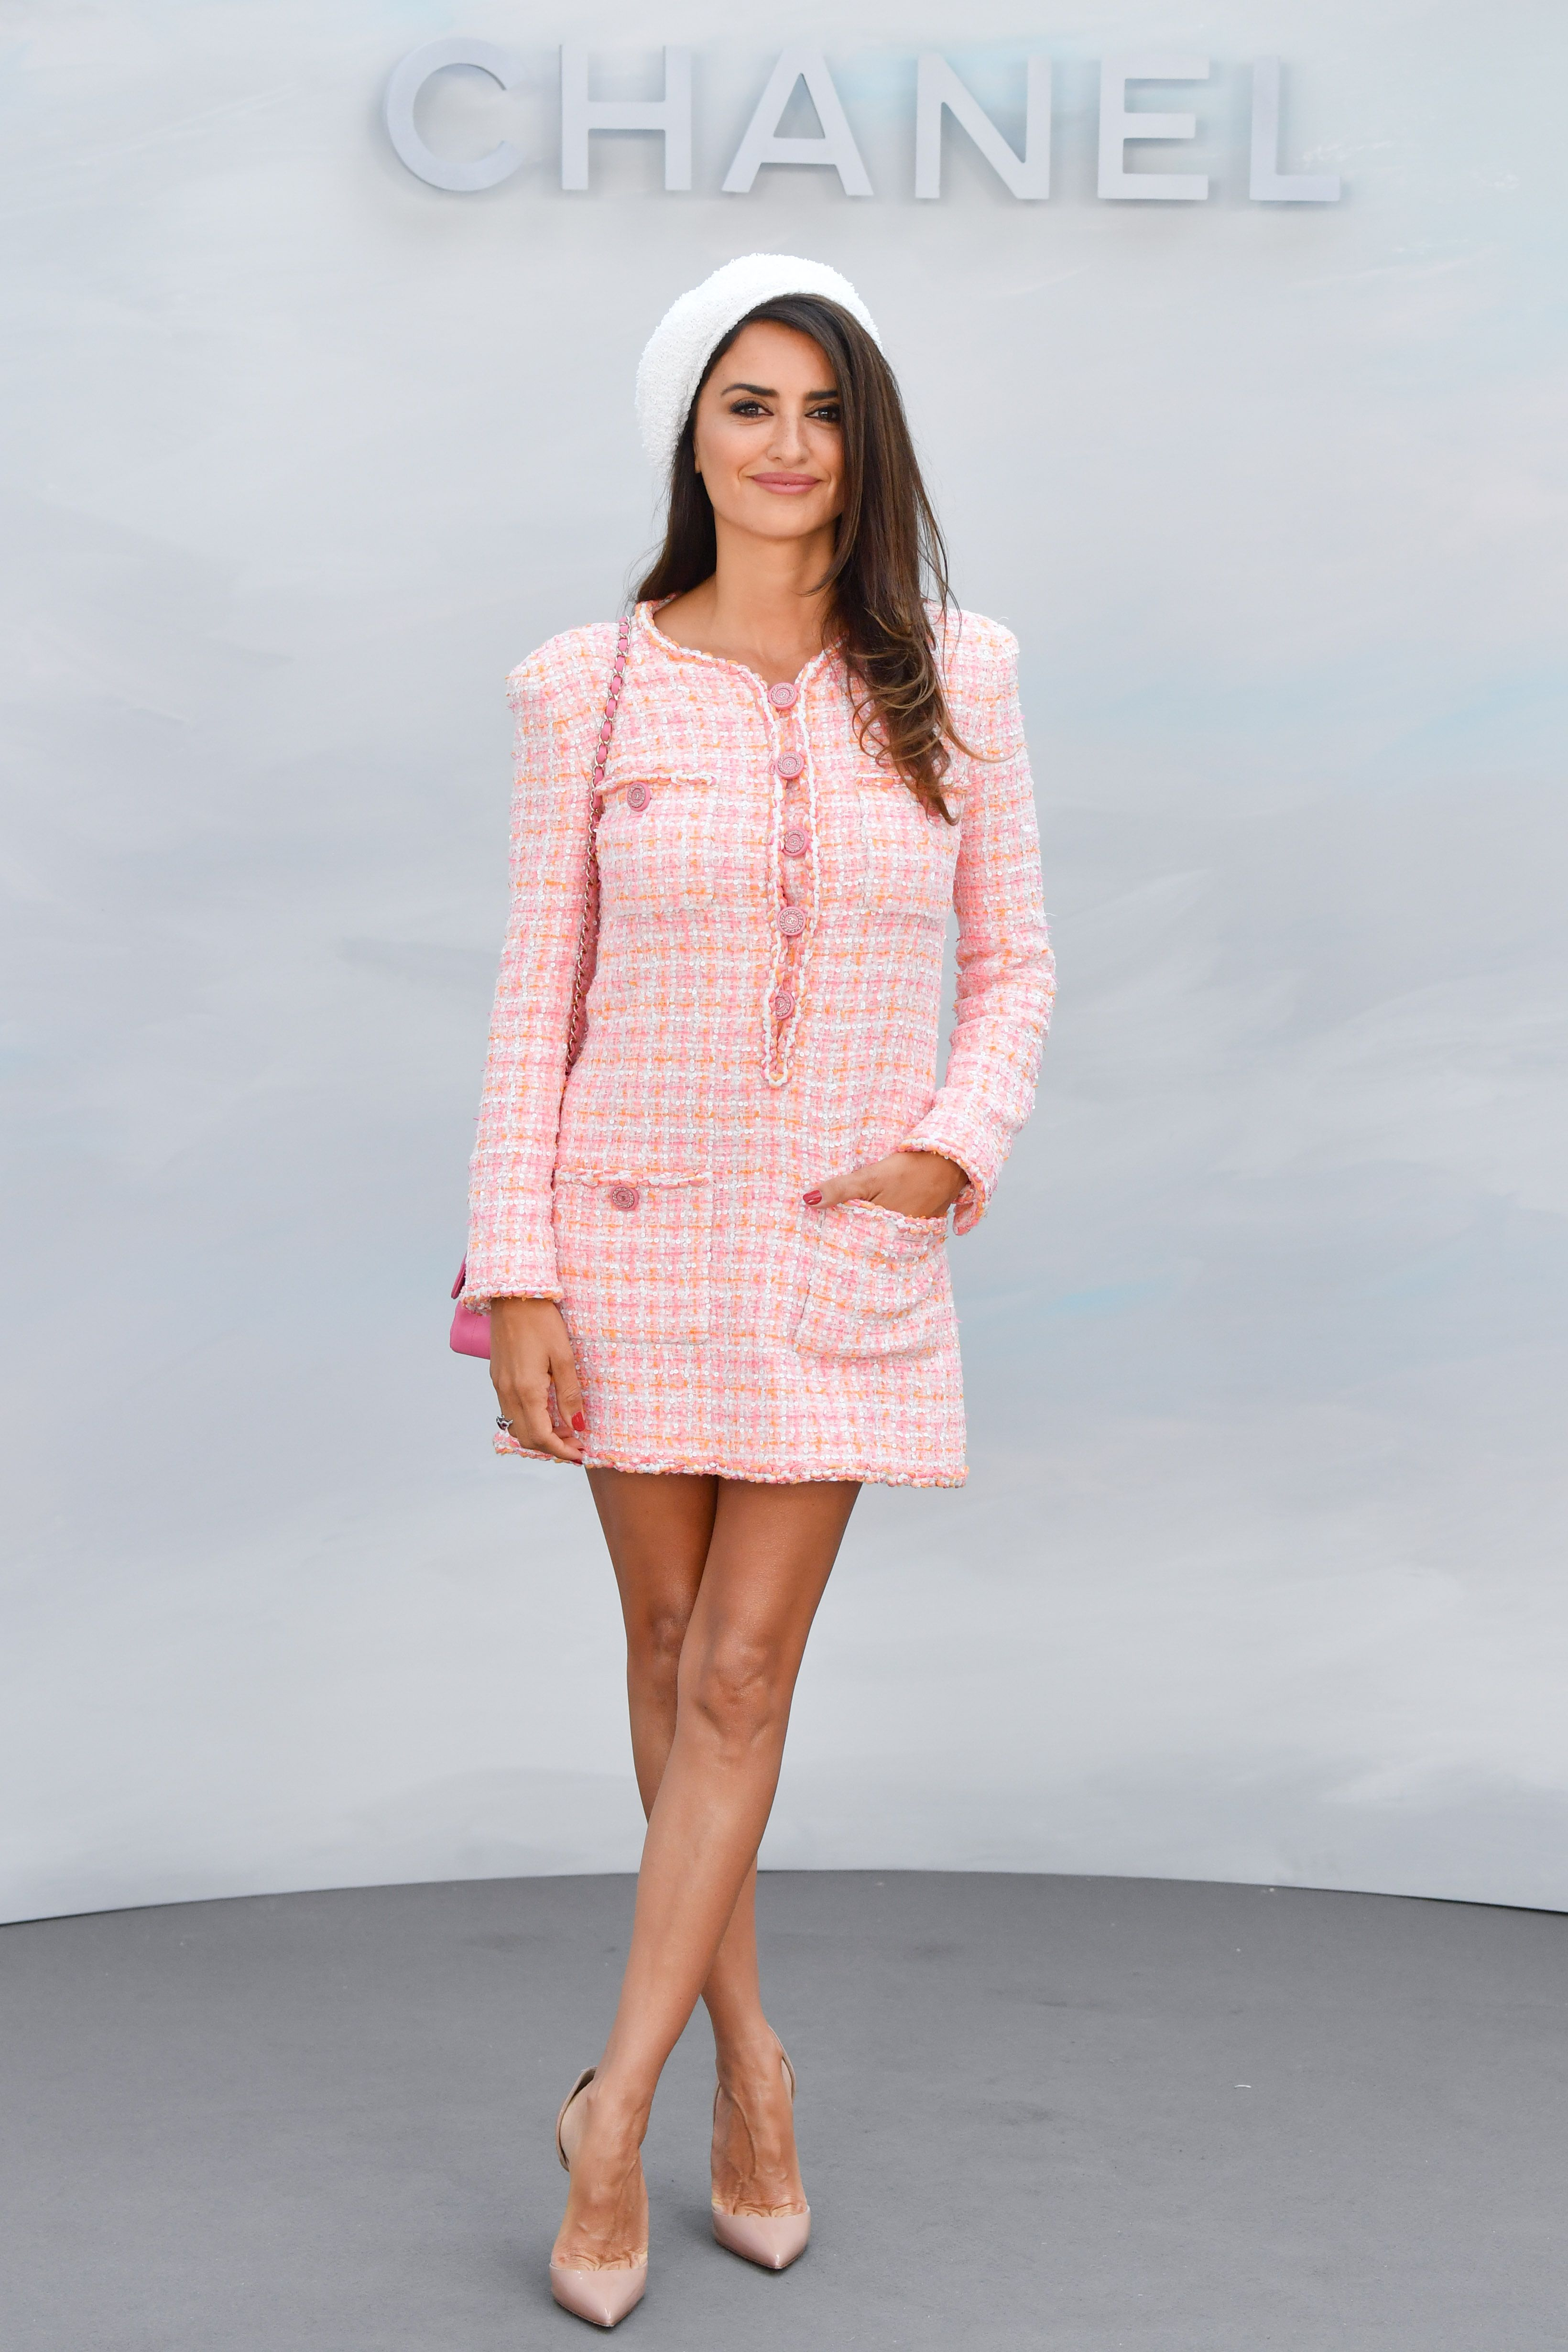 Penélope Cruz tweed